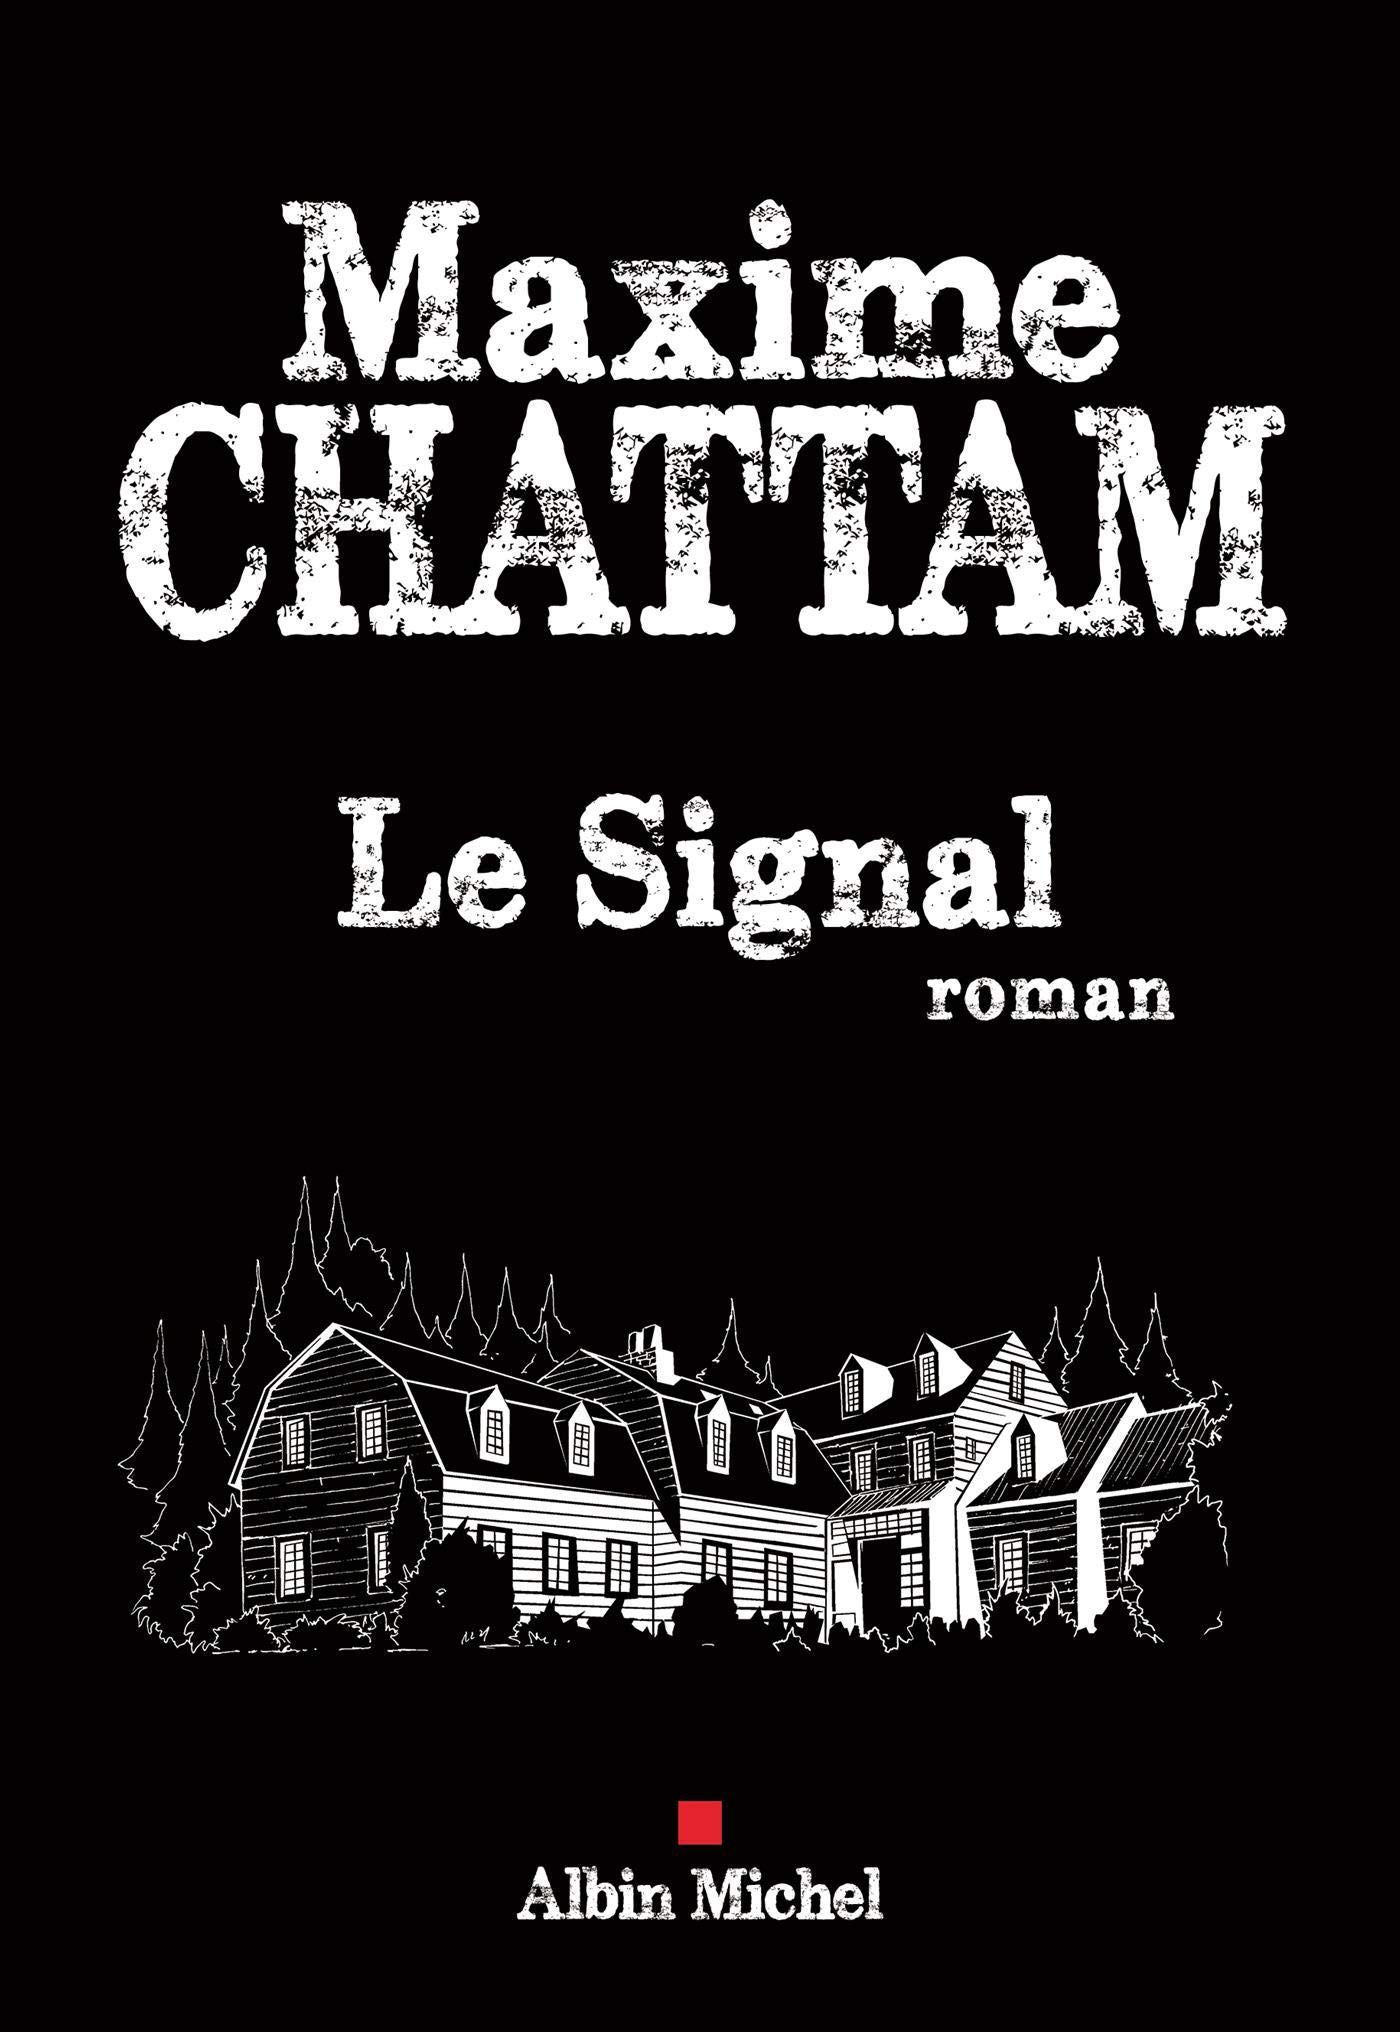 Pdf Le Signal De Maxime Chattam Books To Read Good Books Book Worth Reading